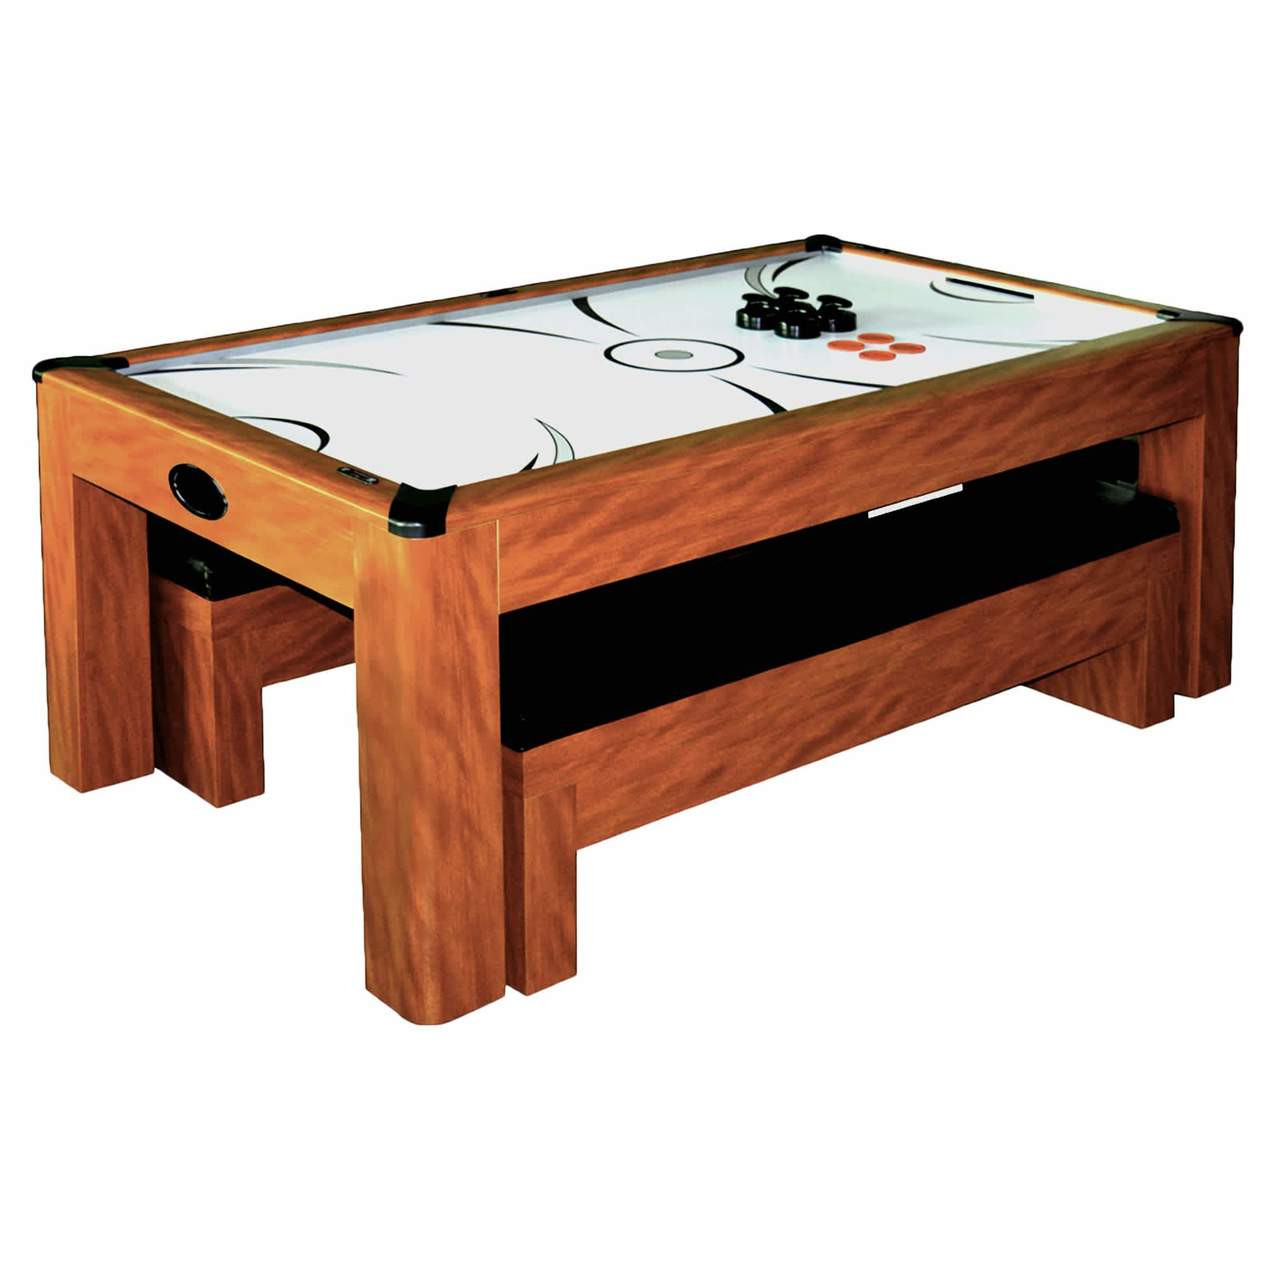 Awe Inspiring Sherwood 7 Ft Air Hockey Dining Table W Benches Ping Pong Ah 106 Free Shipping Gmtry Best Dining Table And Chair Ideas Images Gmtryco